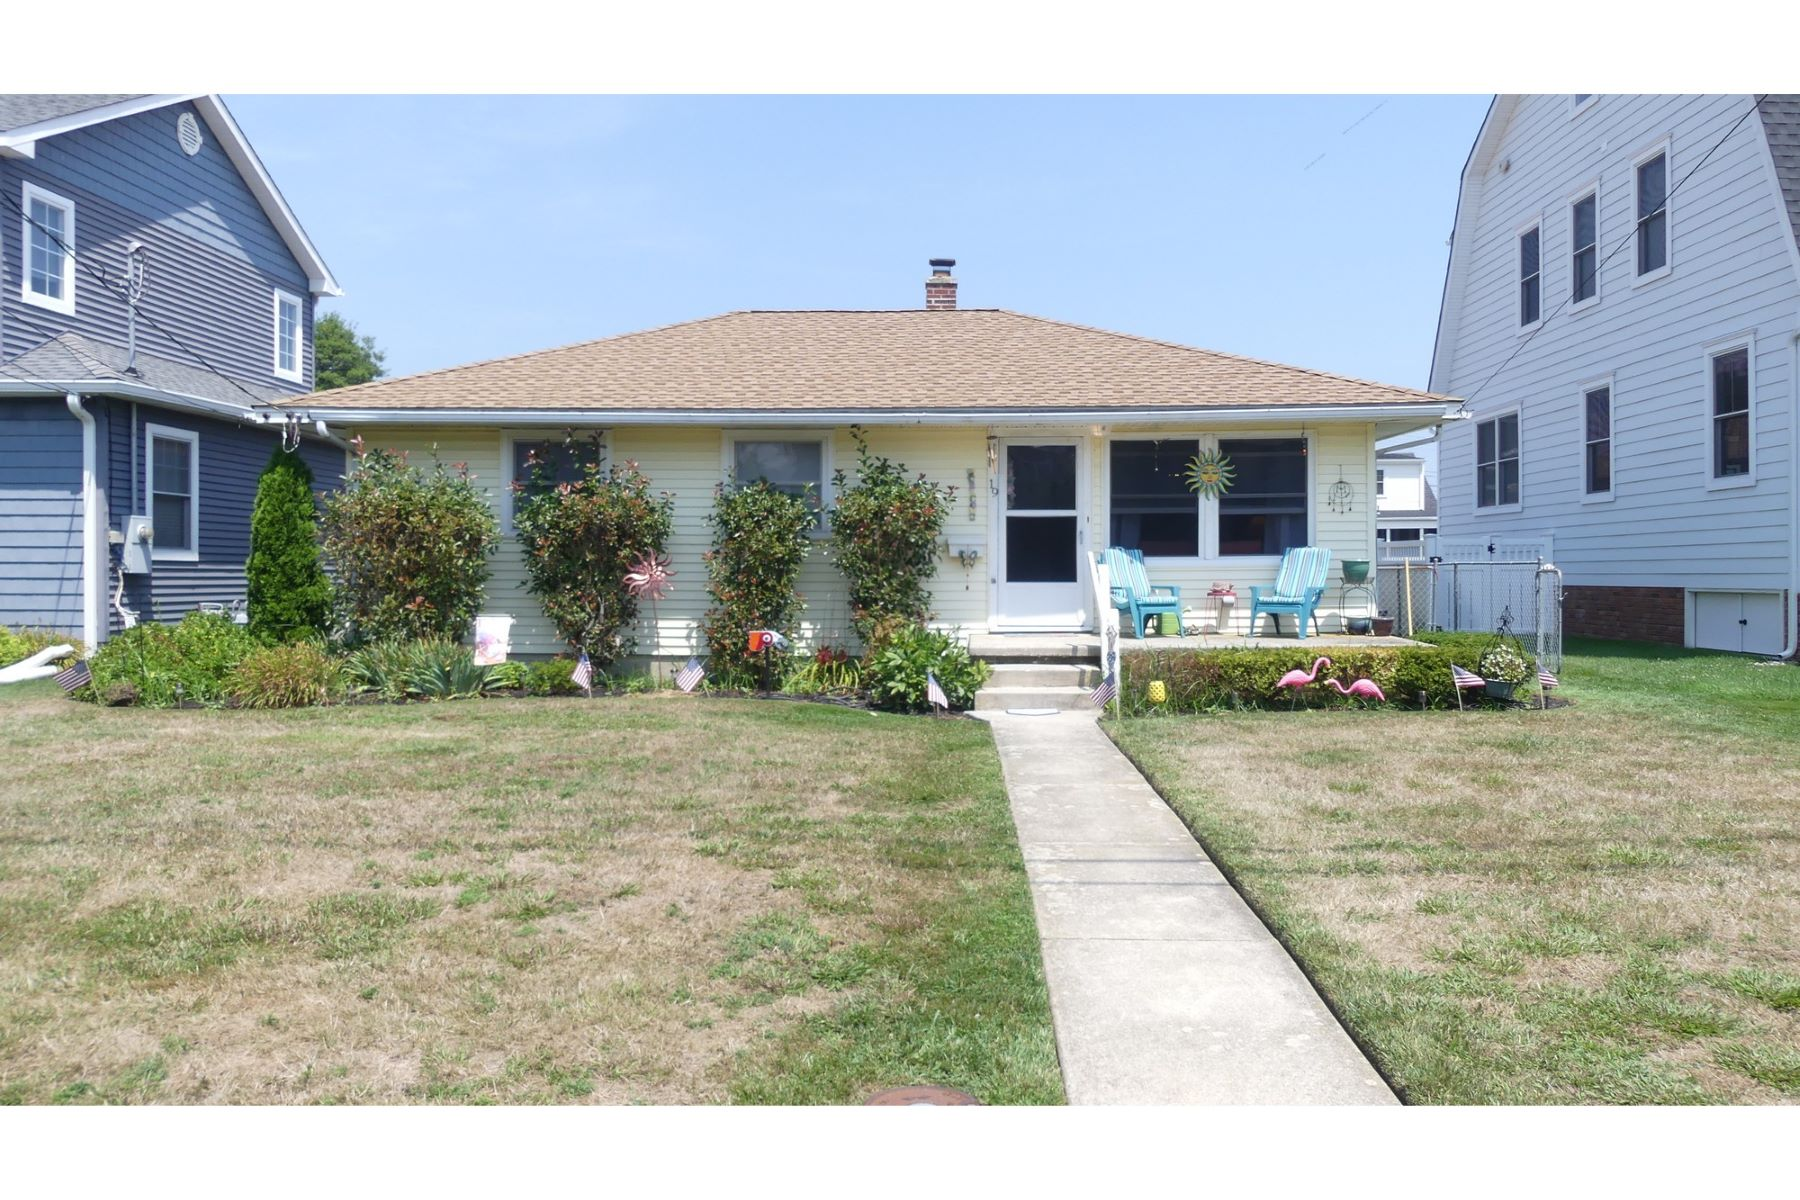 Single Family Homes for Sale at Riviera Rancher 19 Spruce Road Ocean City, New Jersey 08226 United States